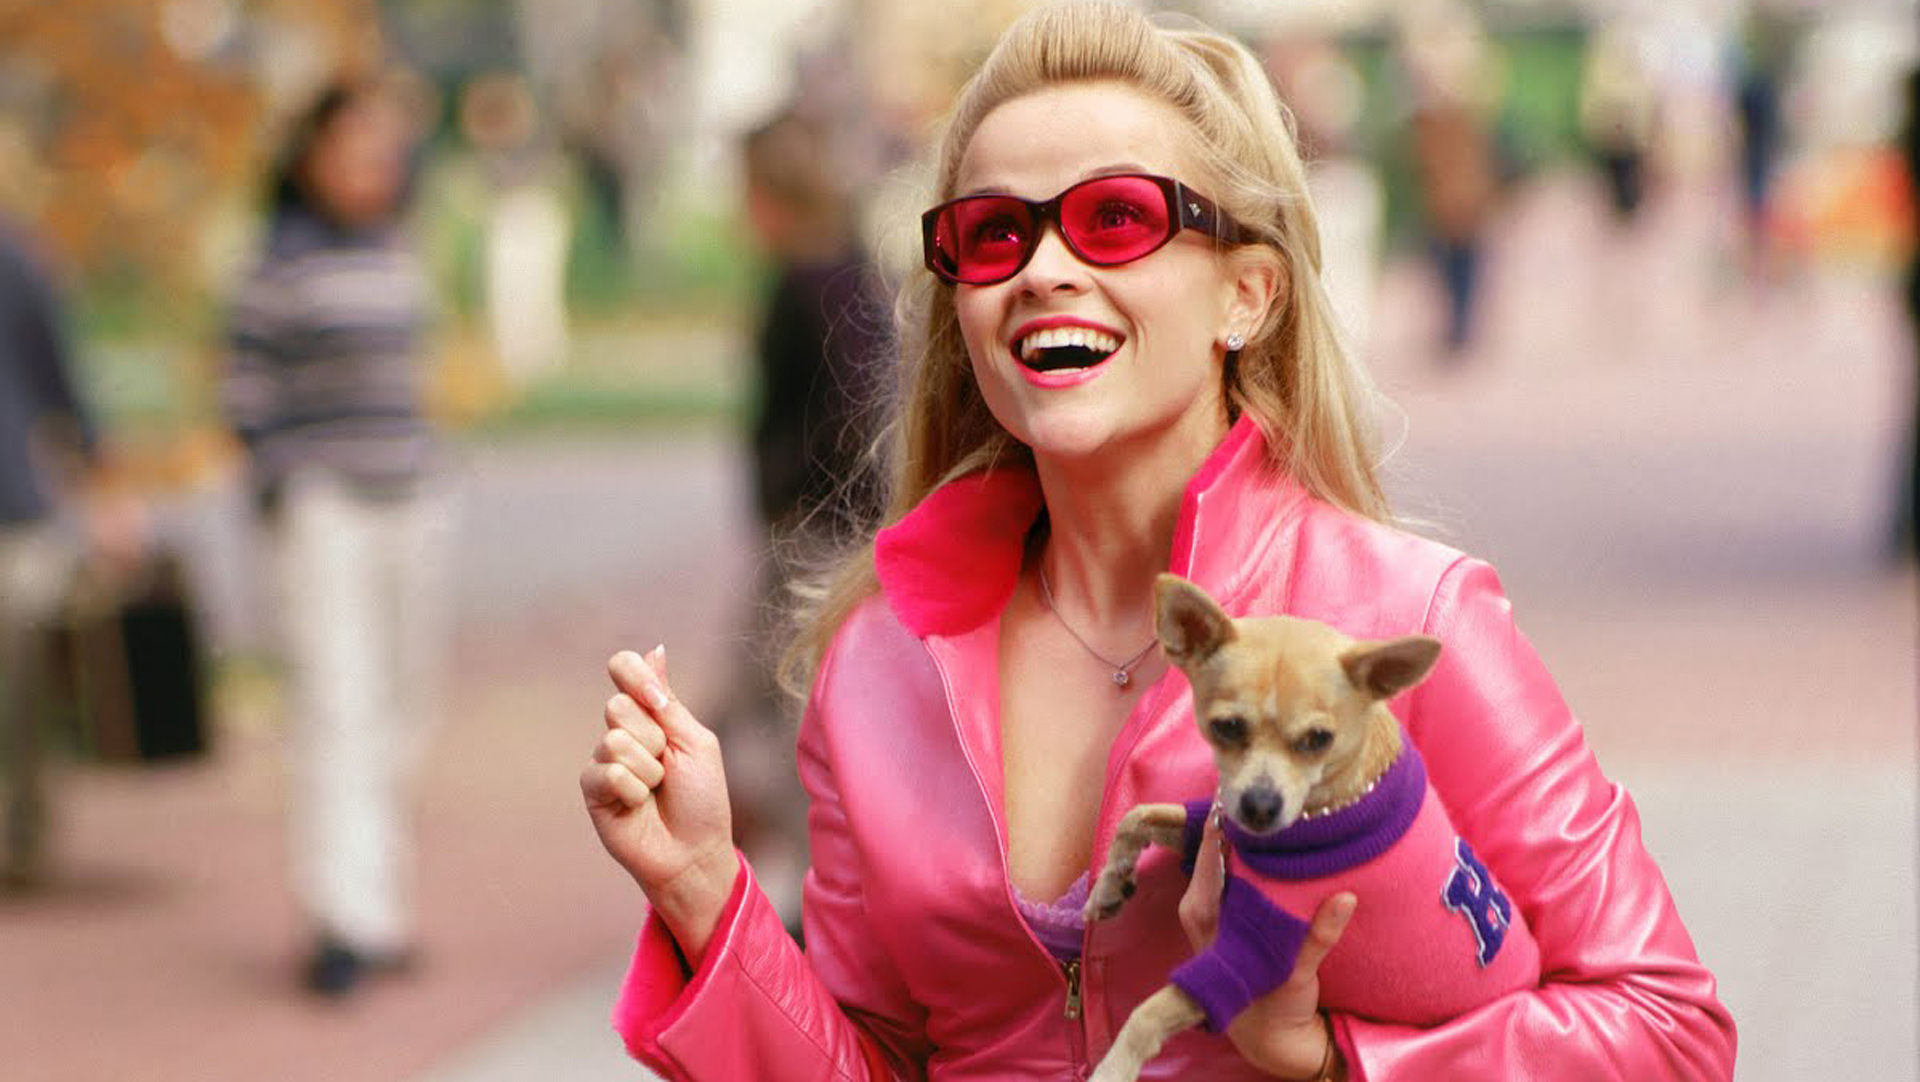 pretty in pink rethinking elle woods legally blonde has a lot of feminist bona fides it passes the bechdel test flying colors the girls in elle s sorority despite confirming to every